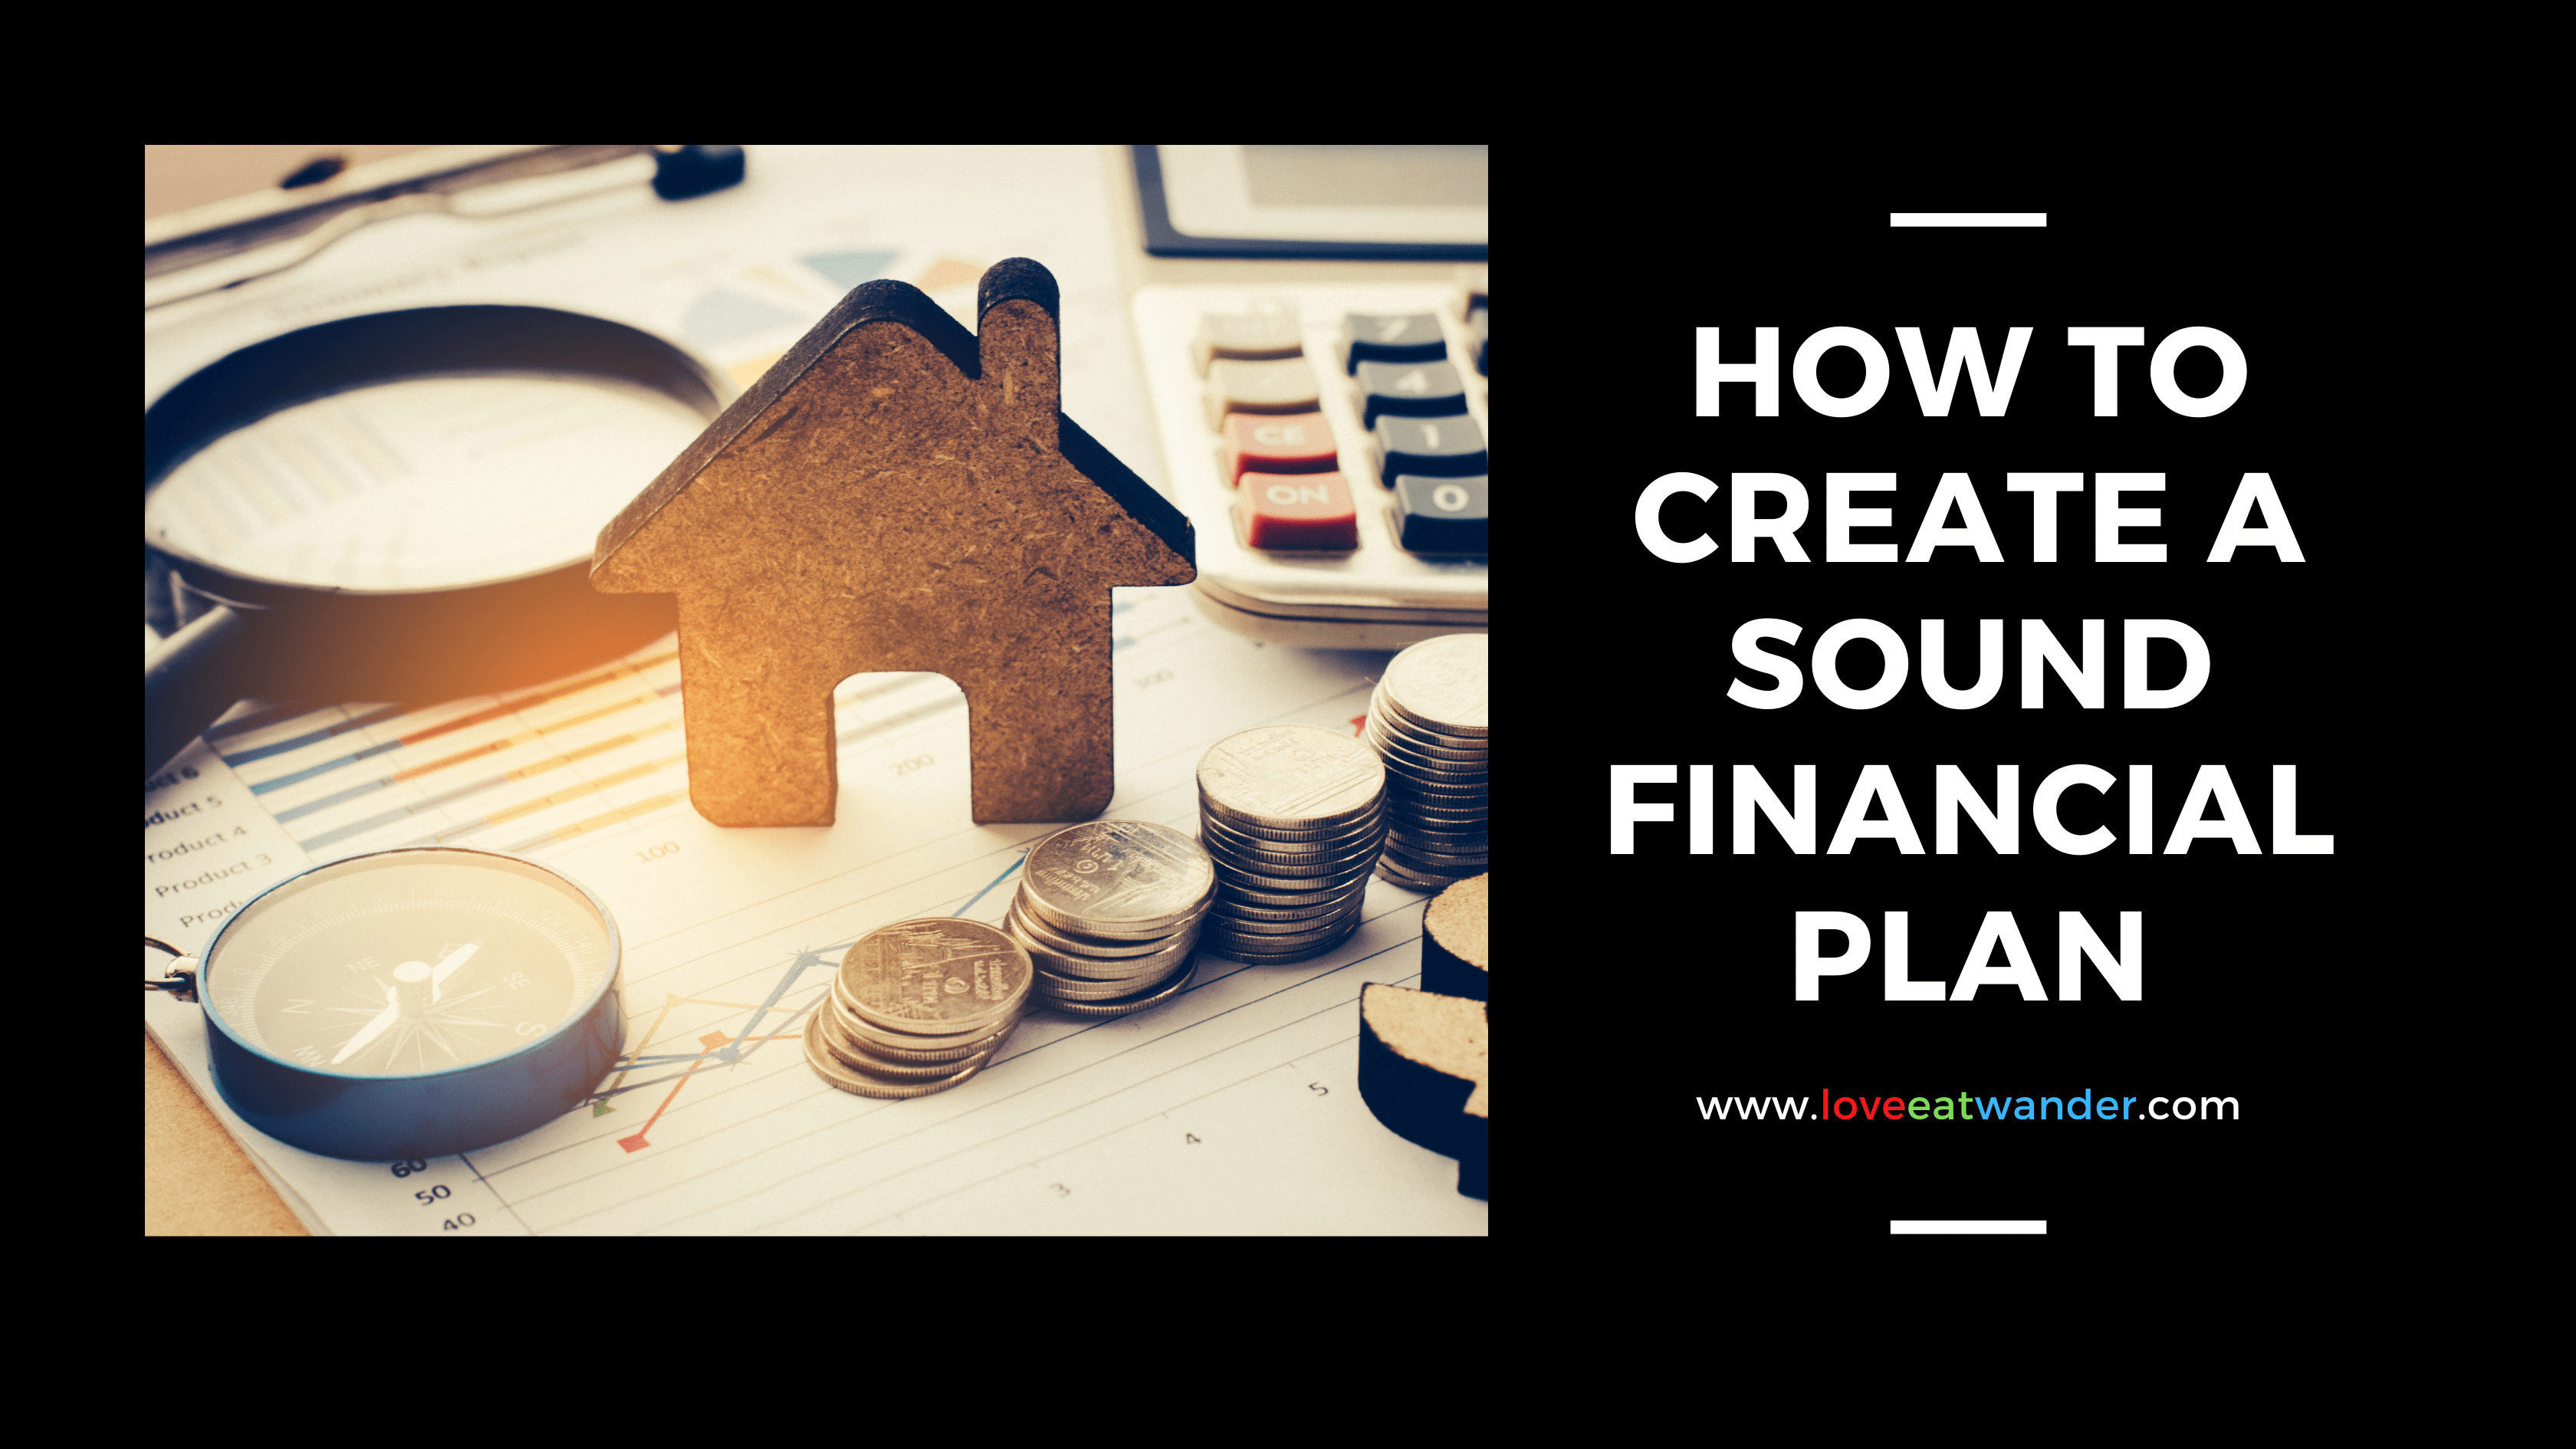 How to Create a Sound Financial Plan